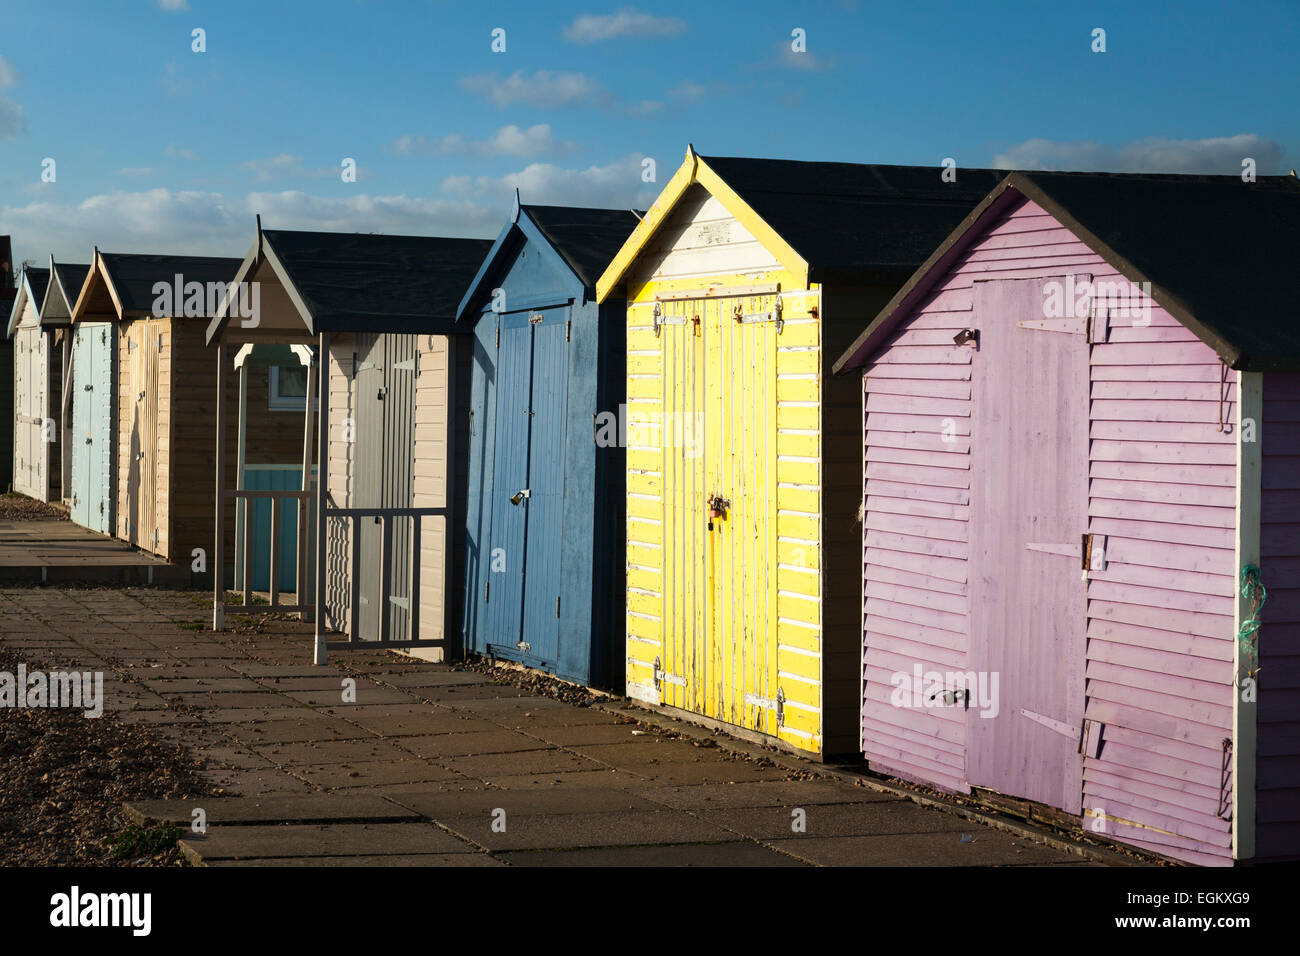 Row of colourful painted beach huts without people Stock Photo